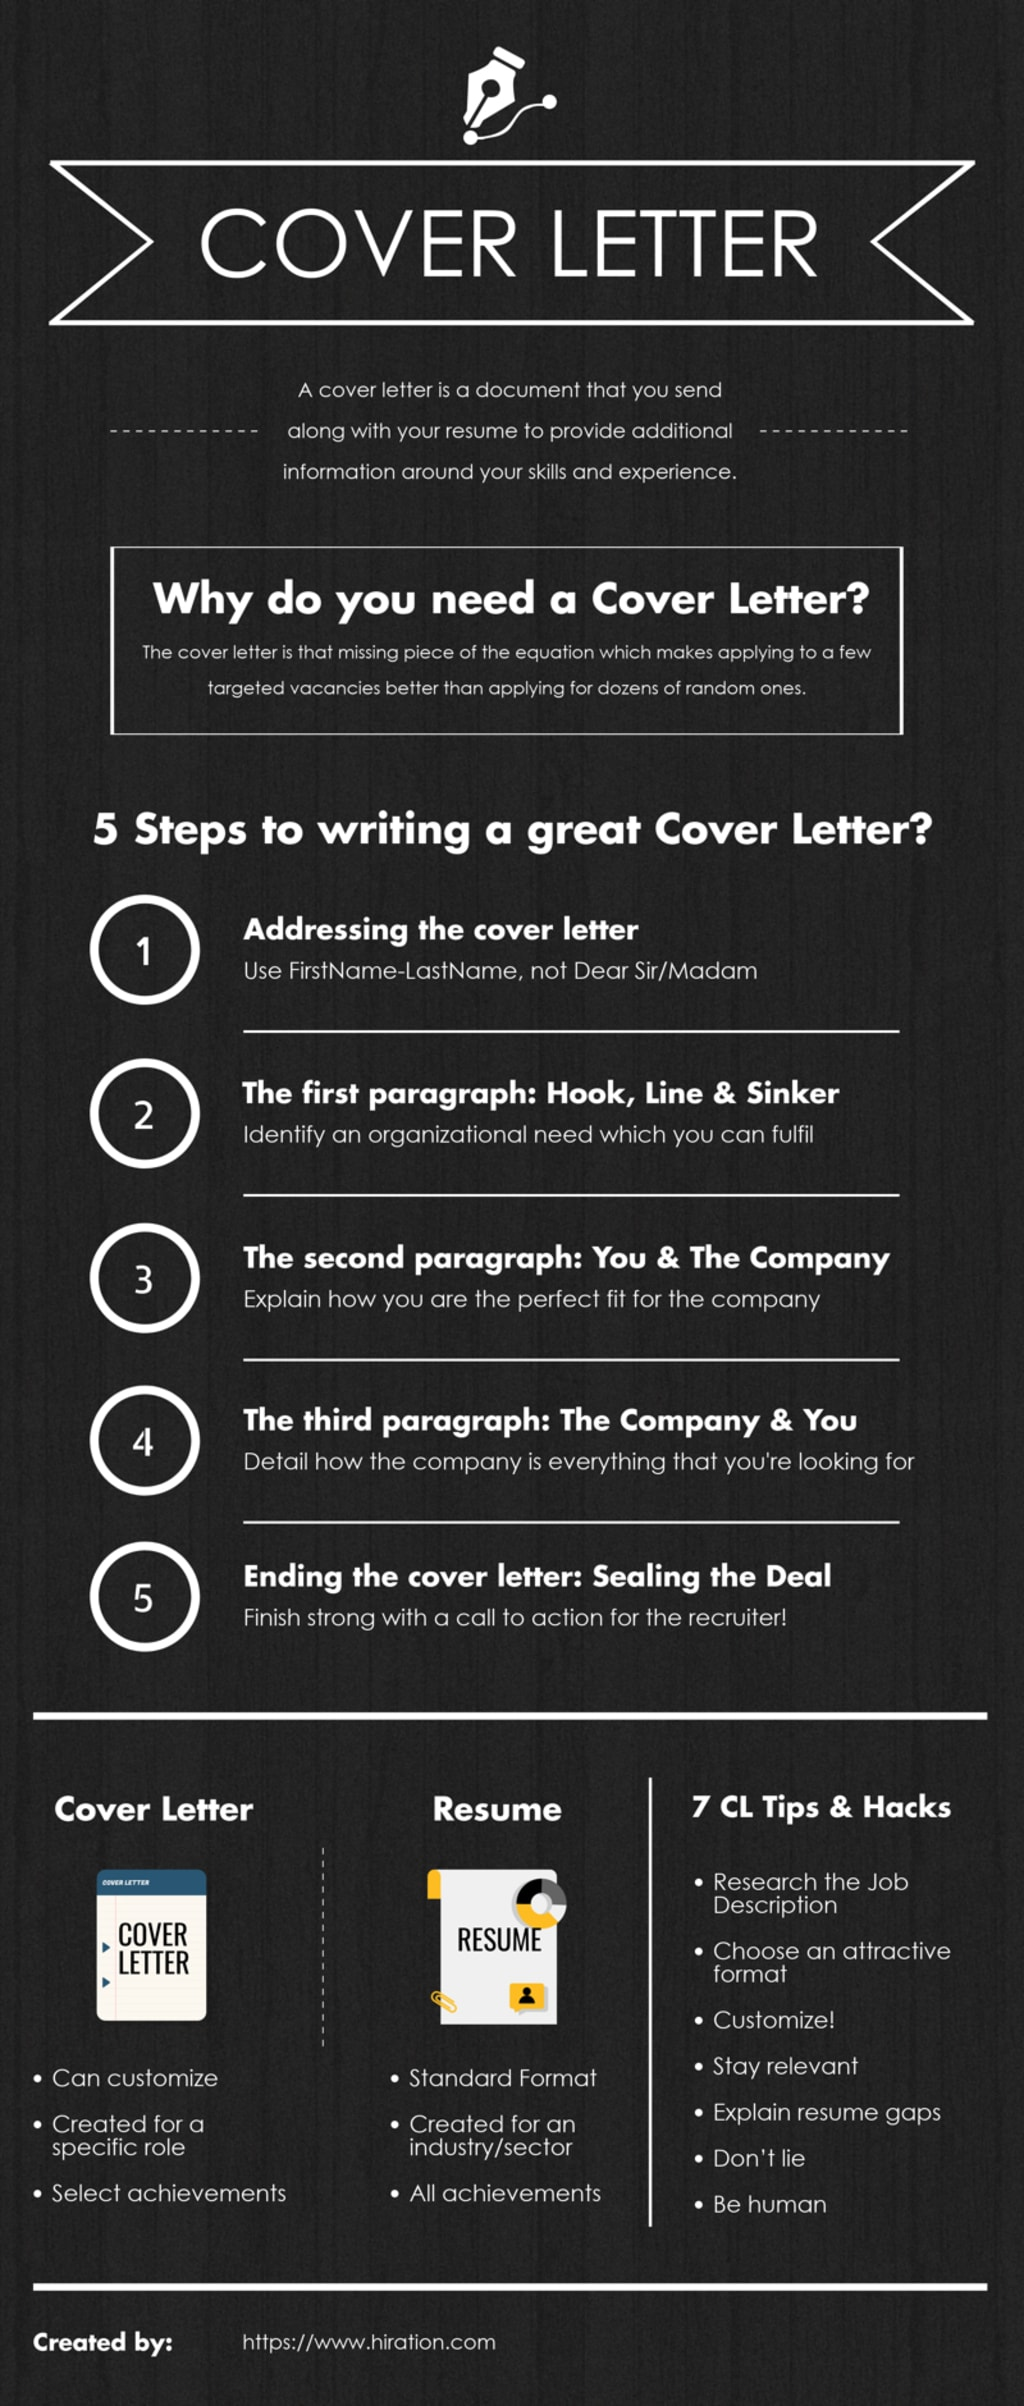 Cover Letter: 7 Tips & a 5-Step Guide